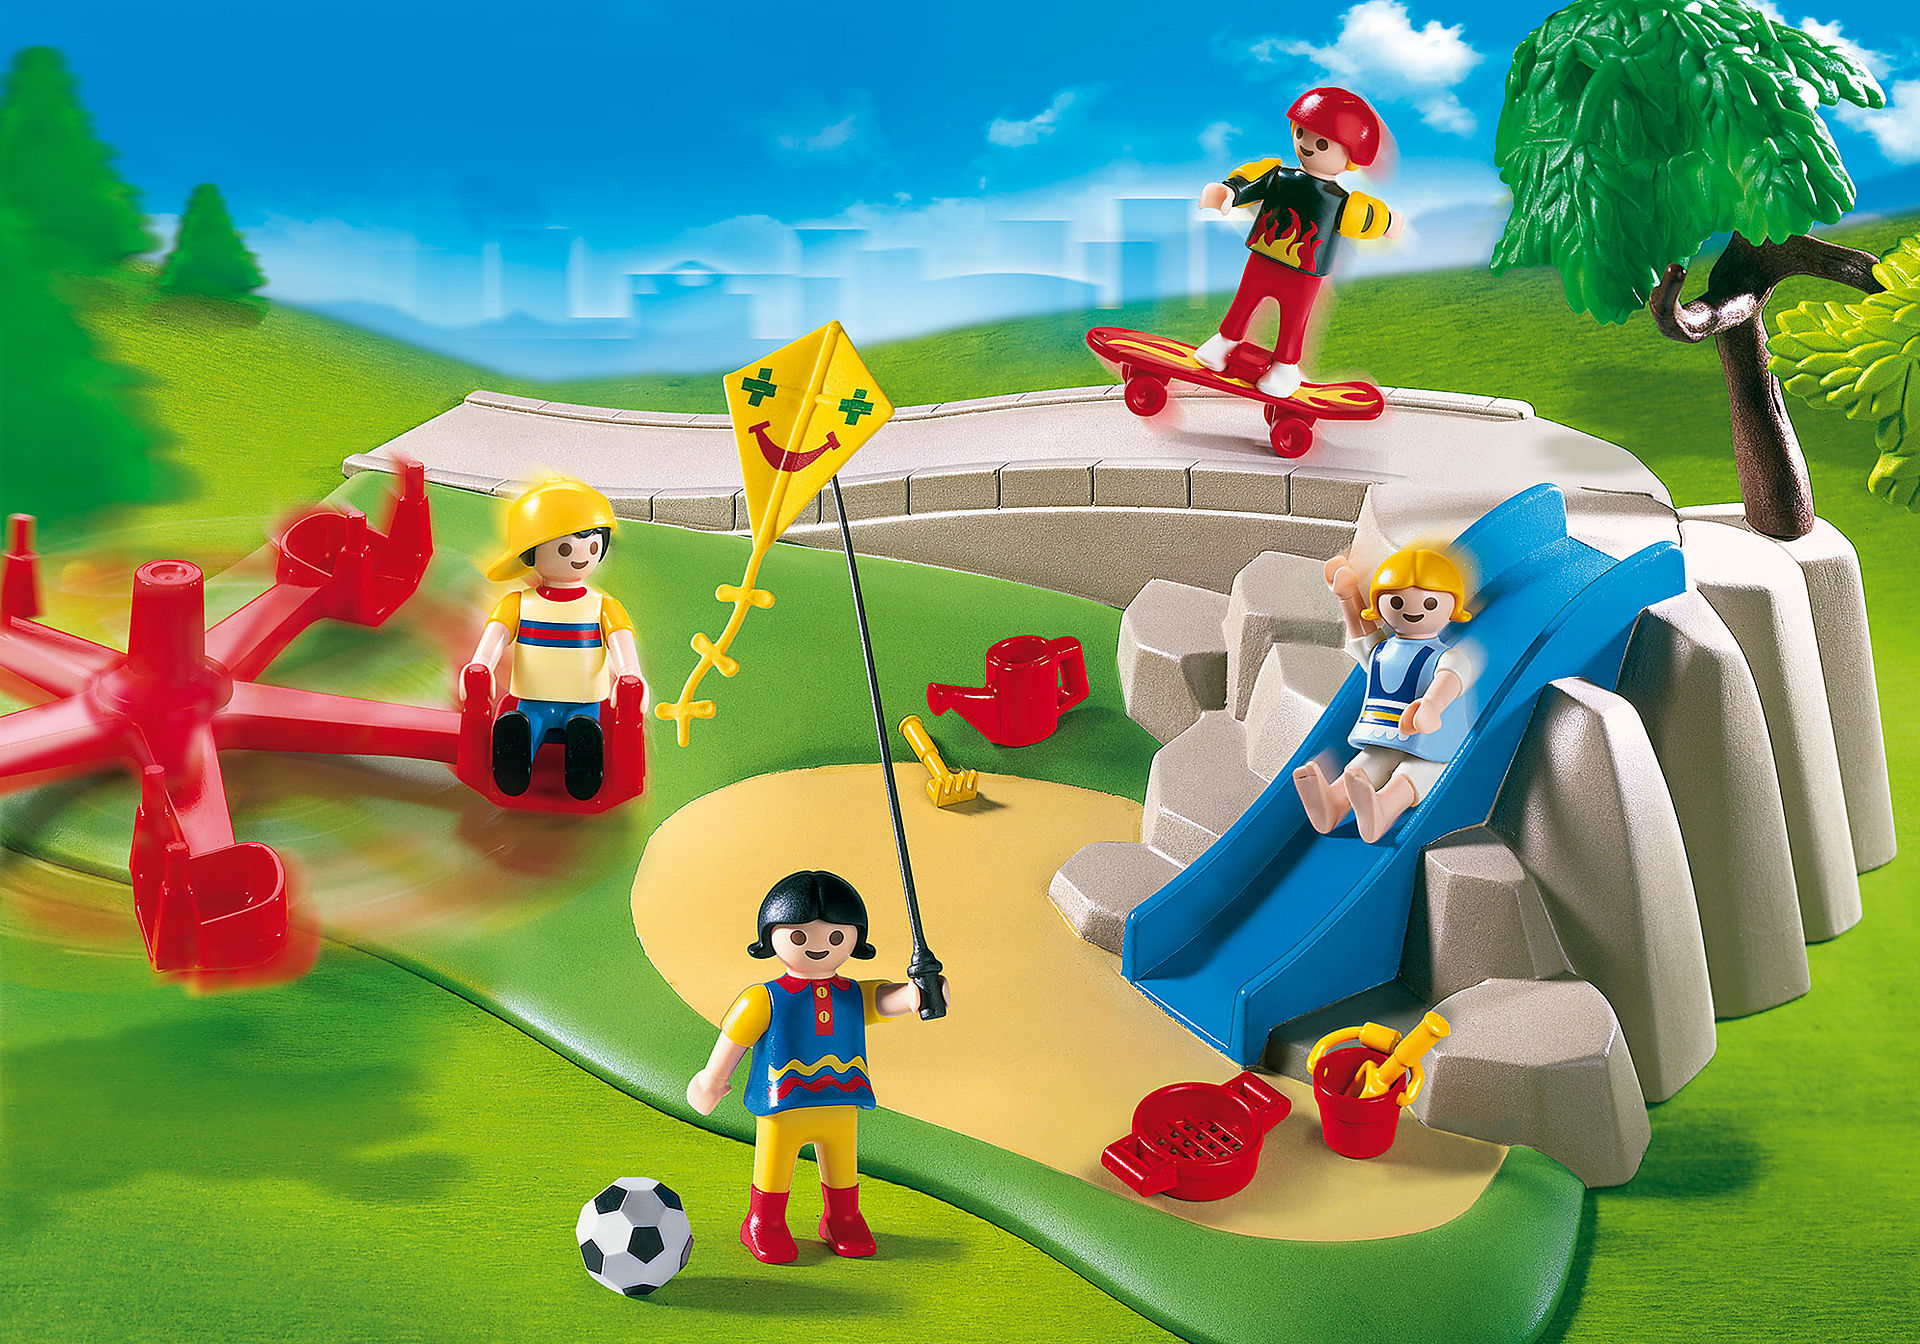 http://media.playmobil.com/i/playmobil/4132_product_detail/SuperSet Infantil